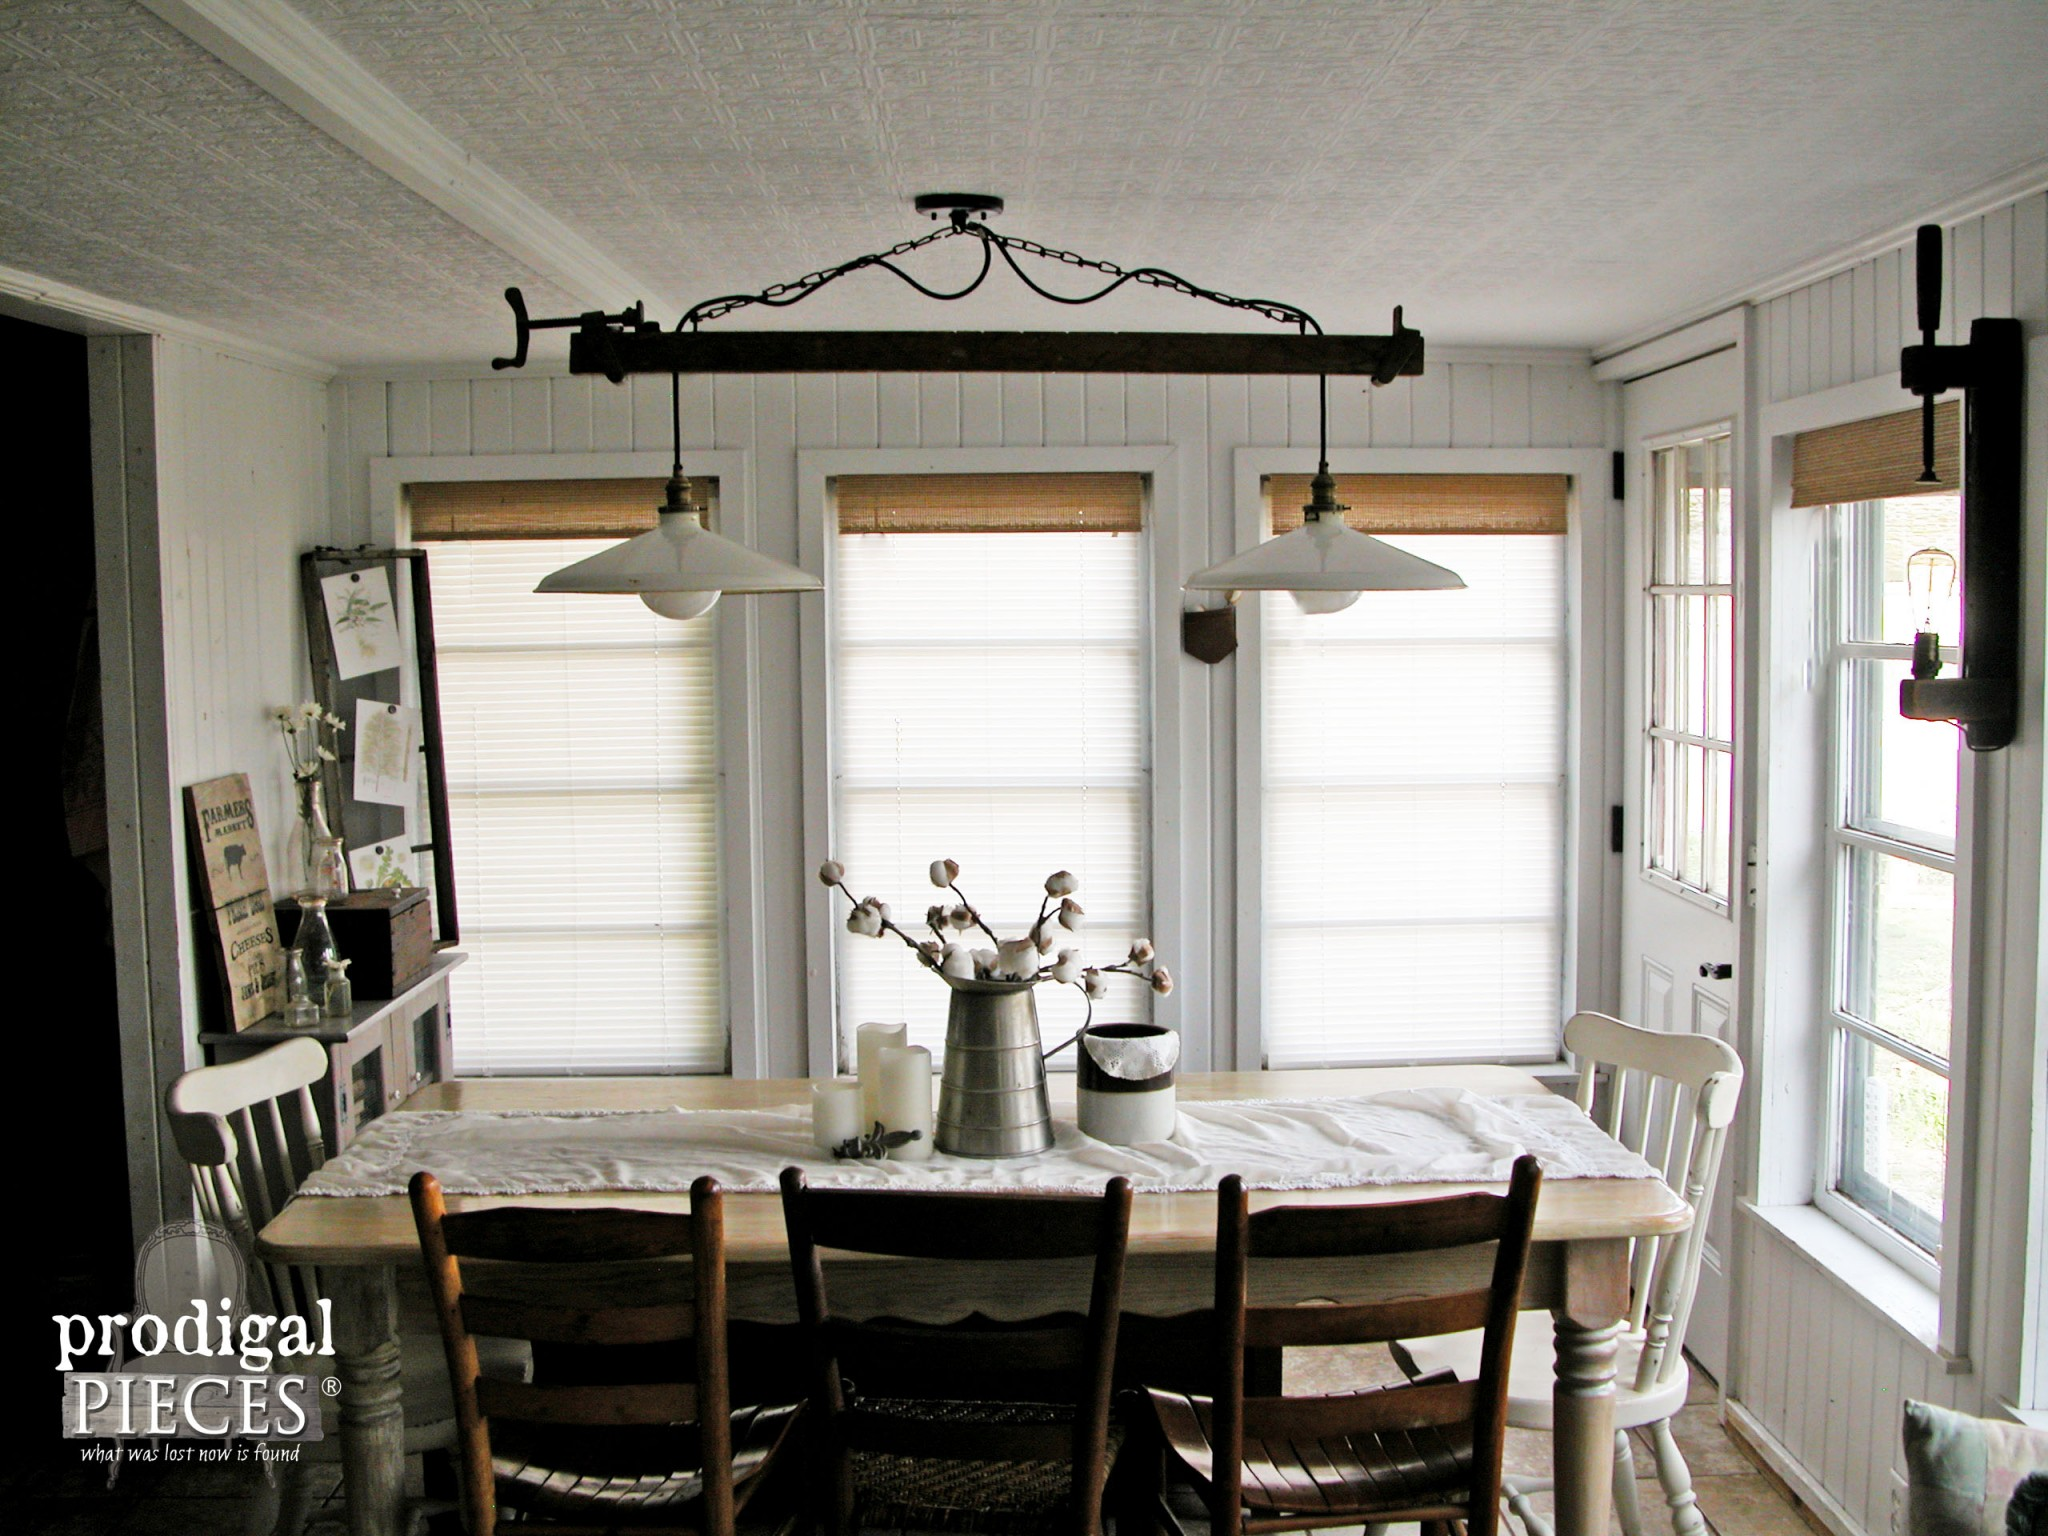 Farmhouse Style Decor How To Add It To Your Home